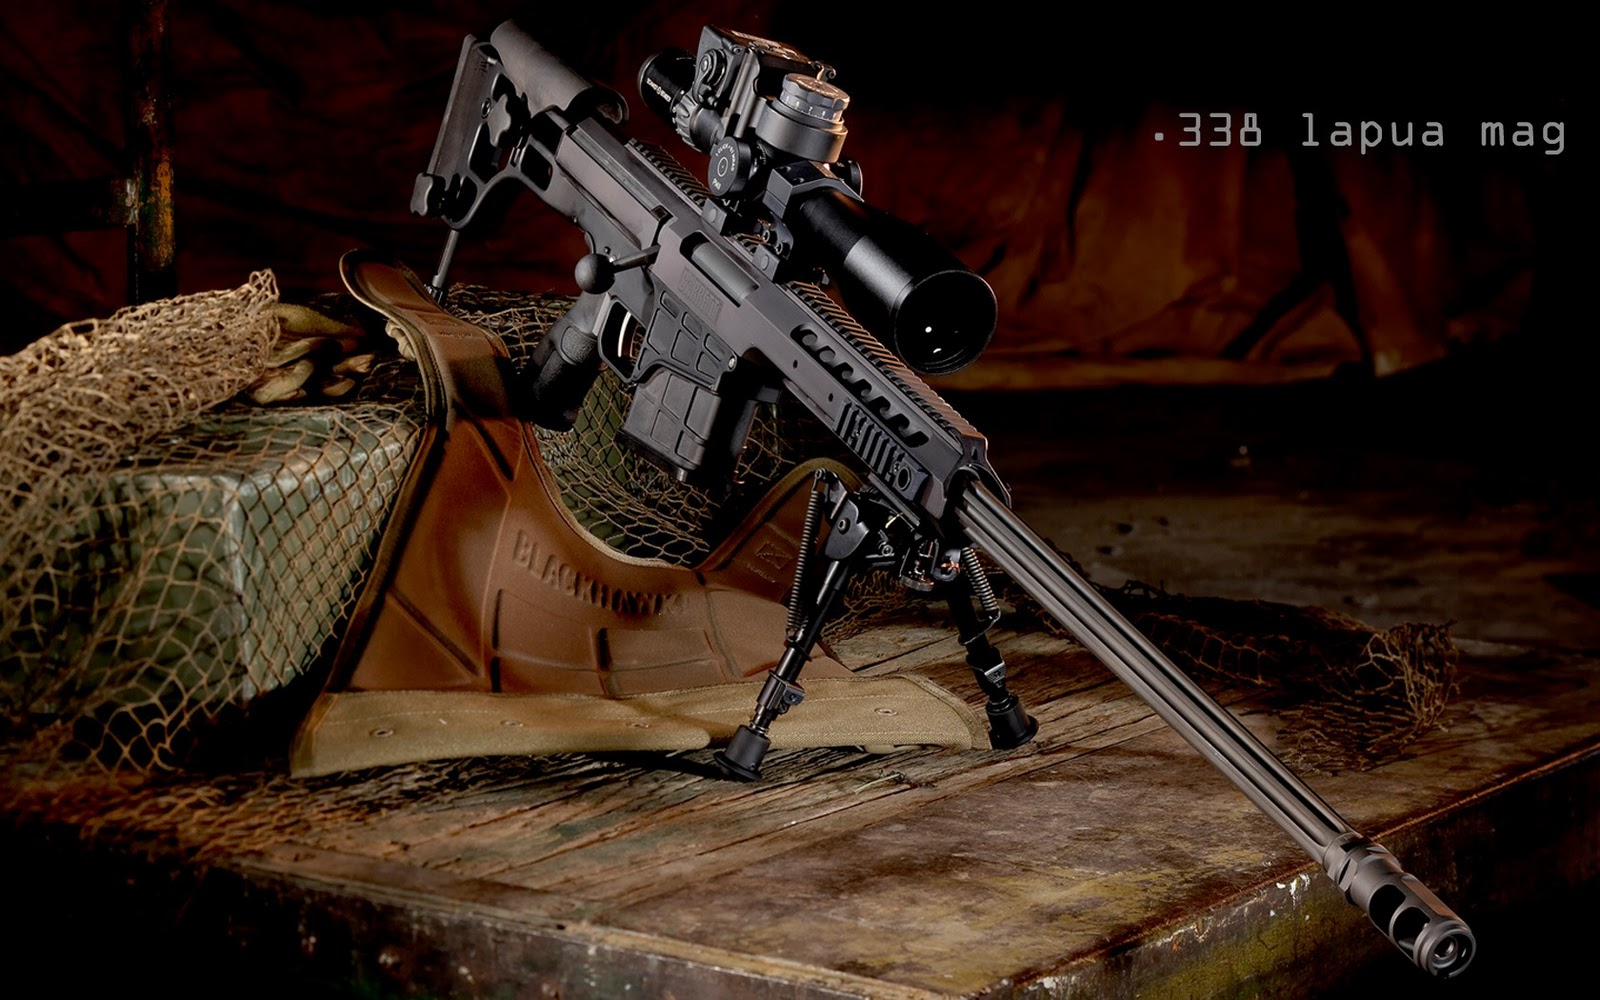 http://4.bp.blogspot.com/-gYGddTnmydo/Tn6odBy5w5I/AAAAAAAABUY/wtTwDOhIQu4/s1600/Barett_98_B_338_Lapua_HD_Sniper_Rifle_Desktop_Gun_Background_Vvallpaper.net.jpg